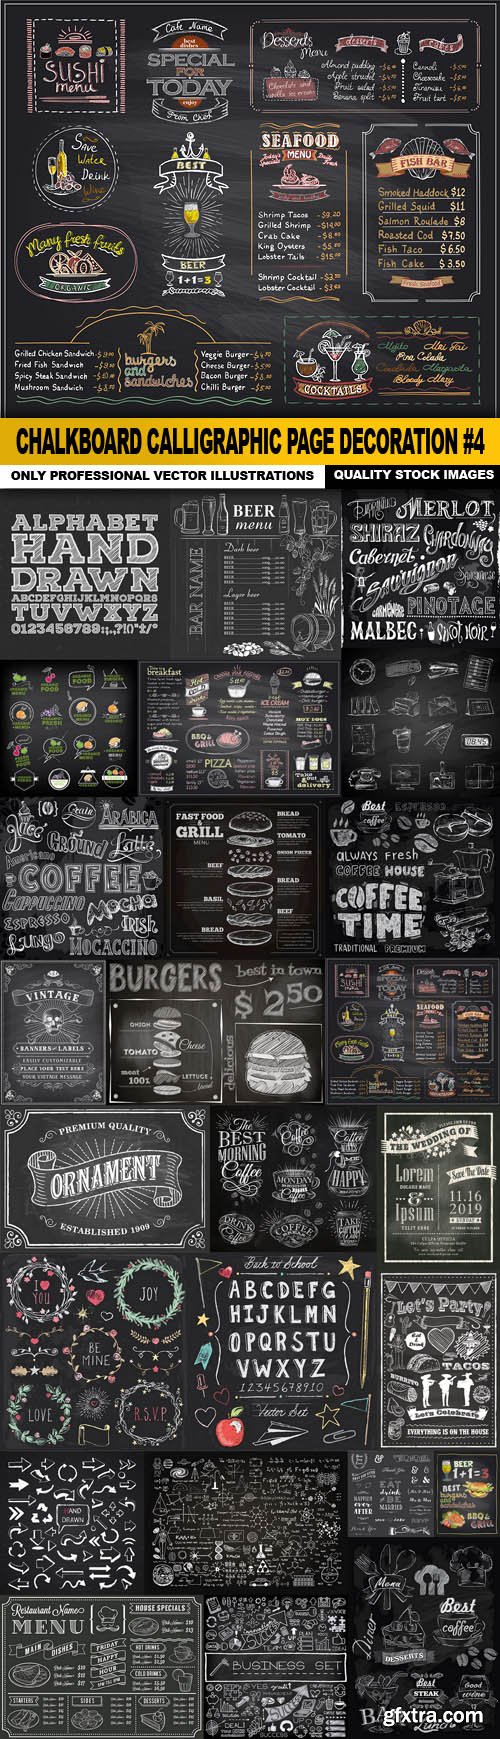 Chalkboard Calligraphic Page Decoration #4 - 25 Vector